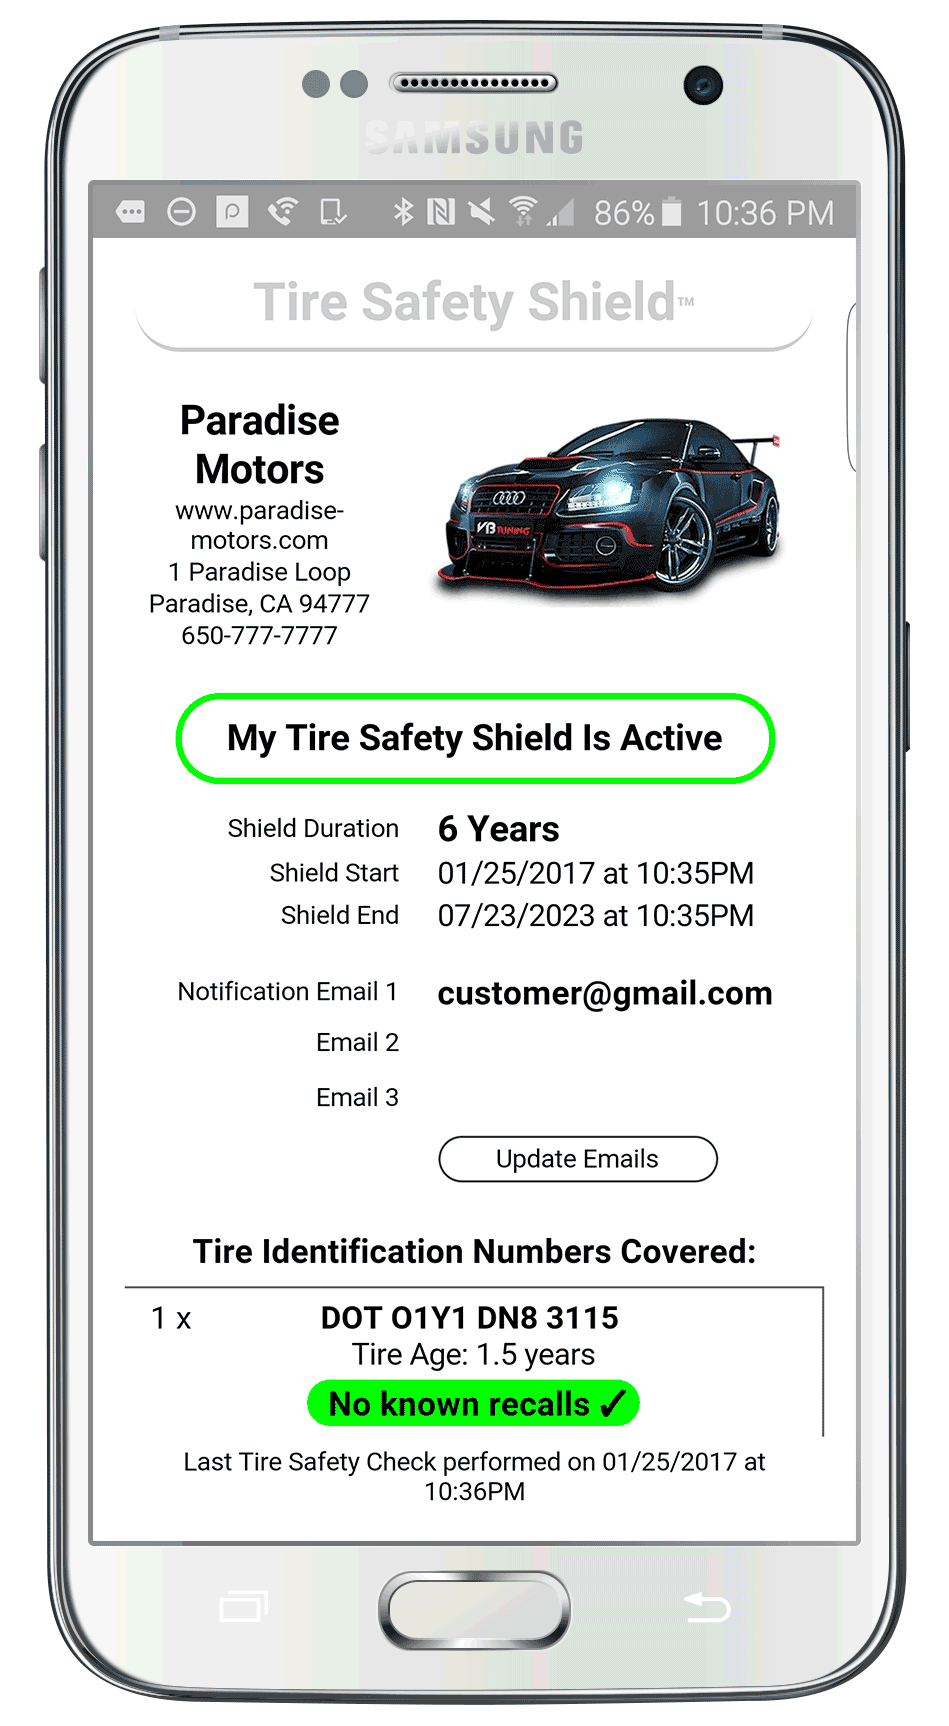 Tire Safety Shield Report